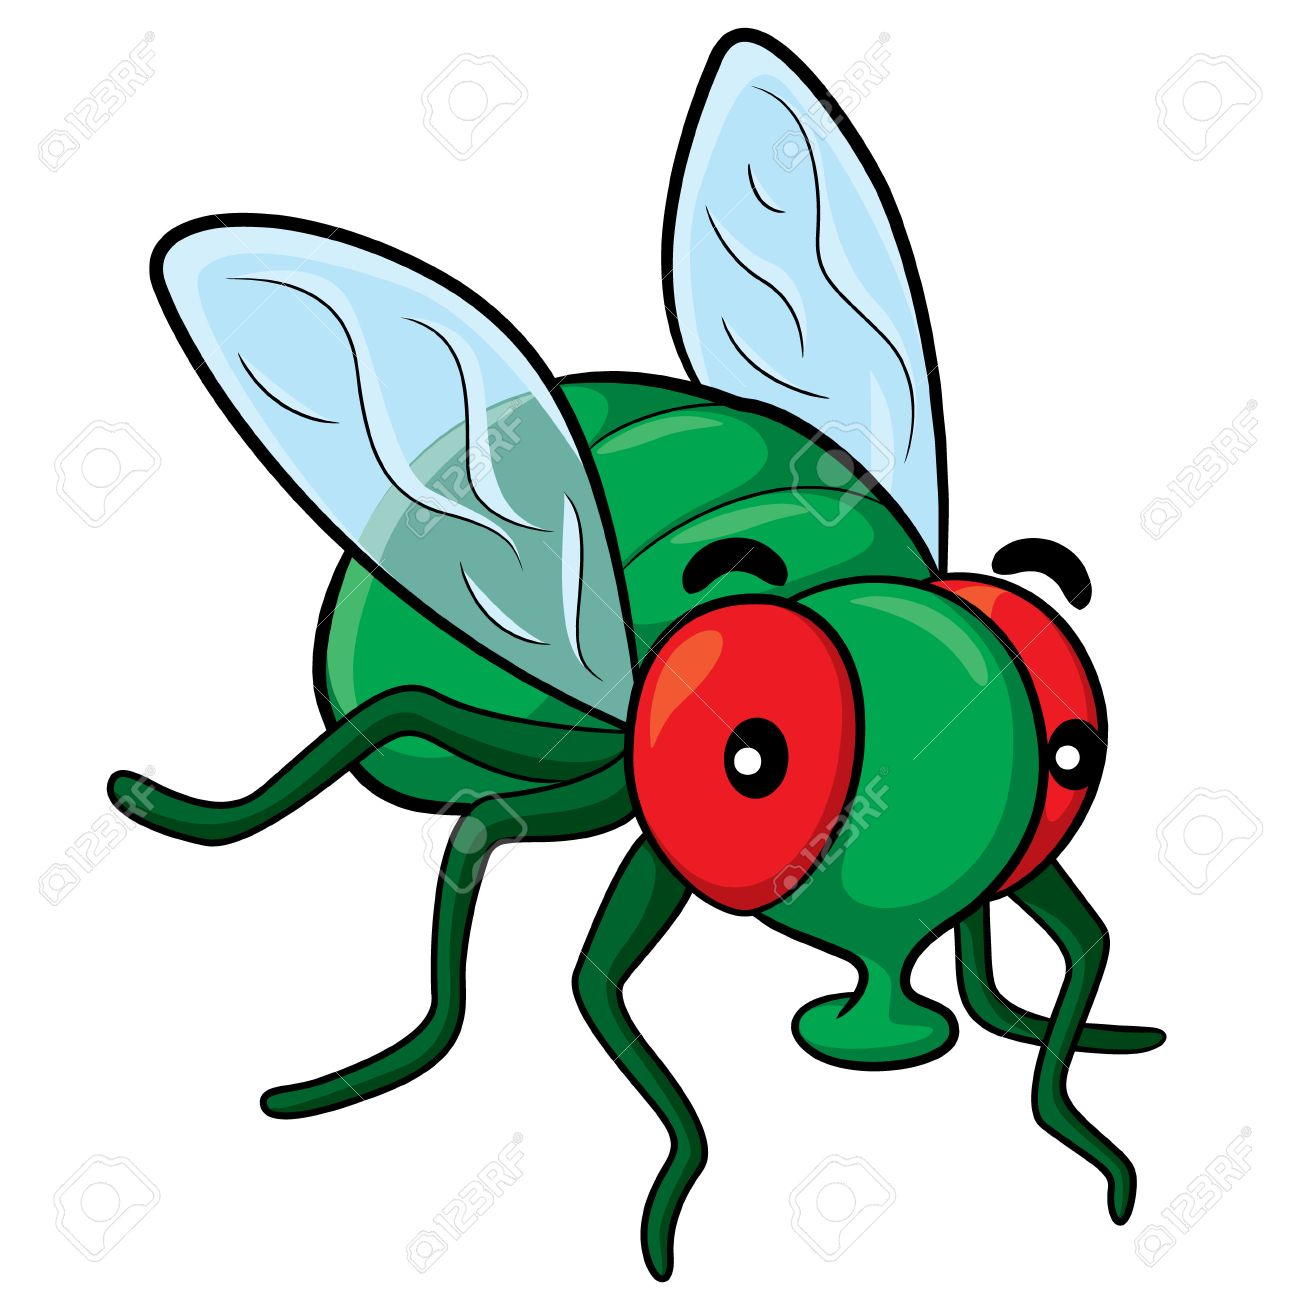 1300x1300 Illustration Of Cute Cartoon Fly. Royalty Free Cliparts, Vectors